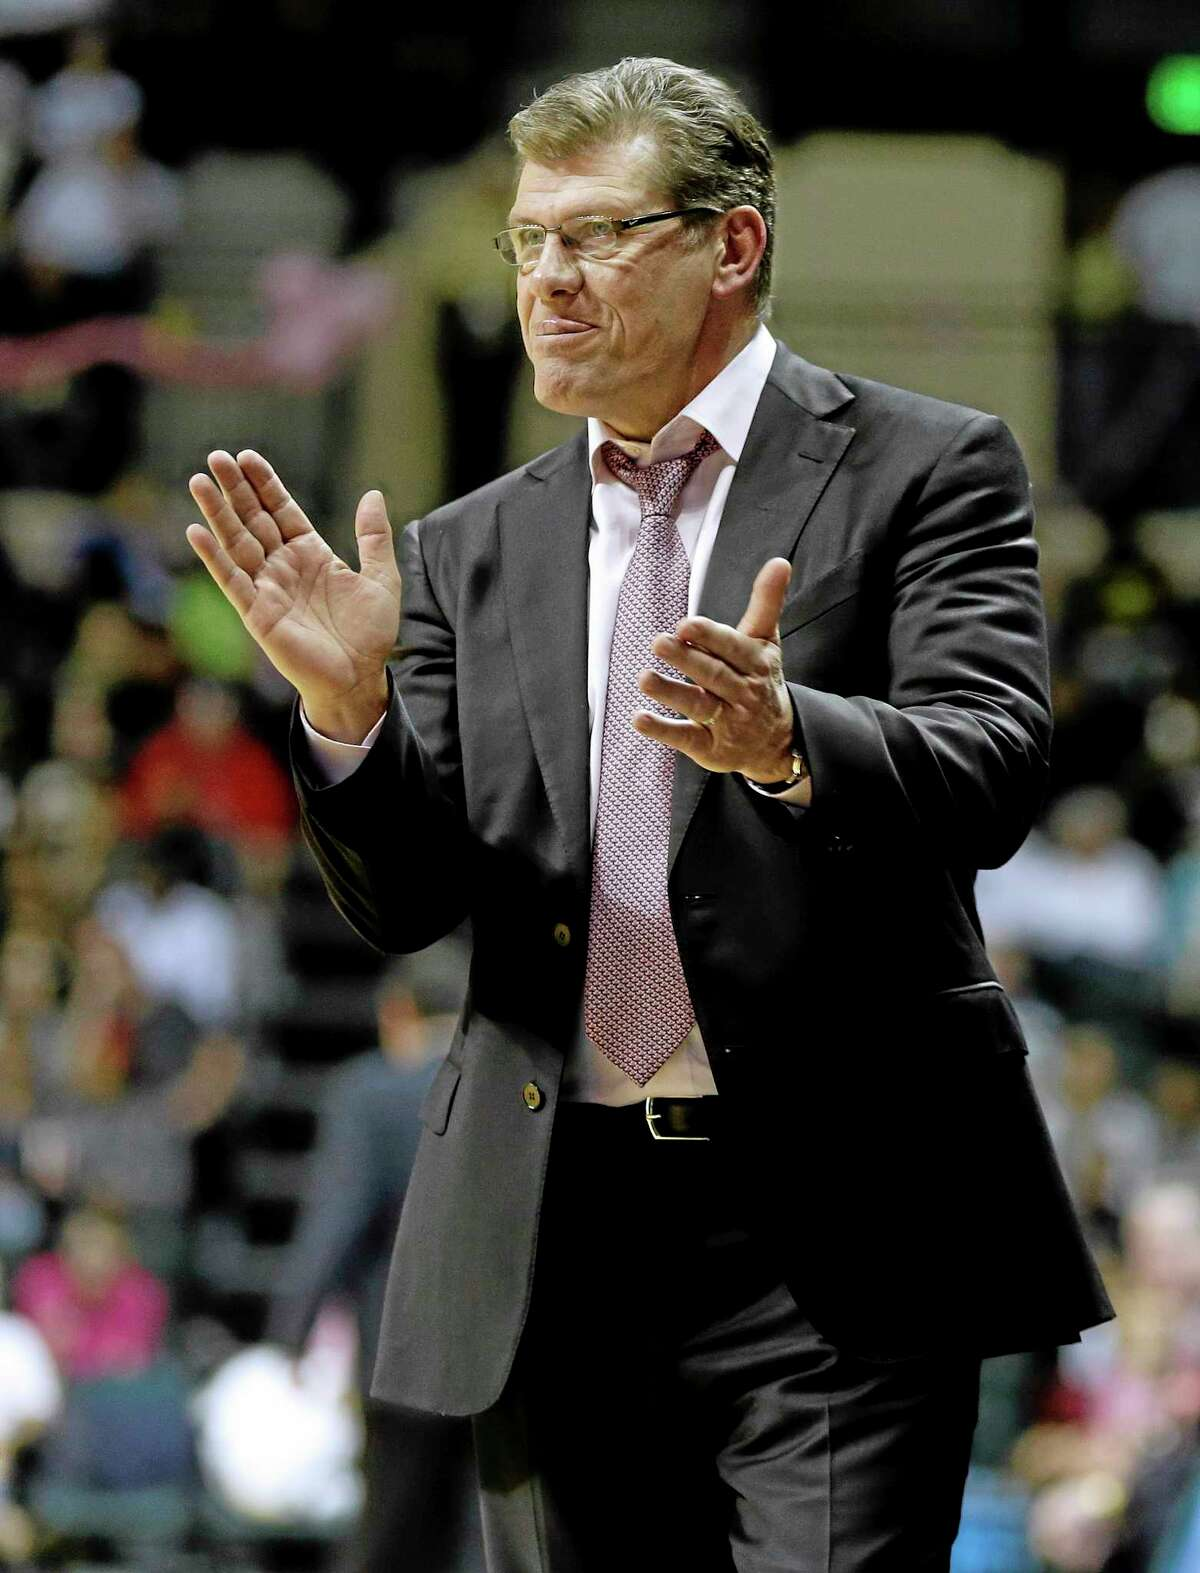 Geno Auriemma will be coaching his 1,000th game at UConn Saturday evening at Houston.